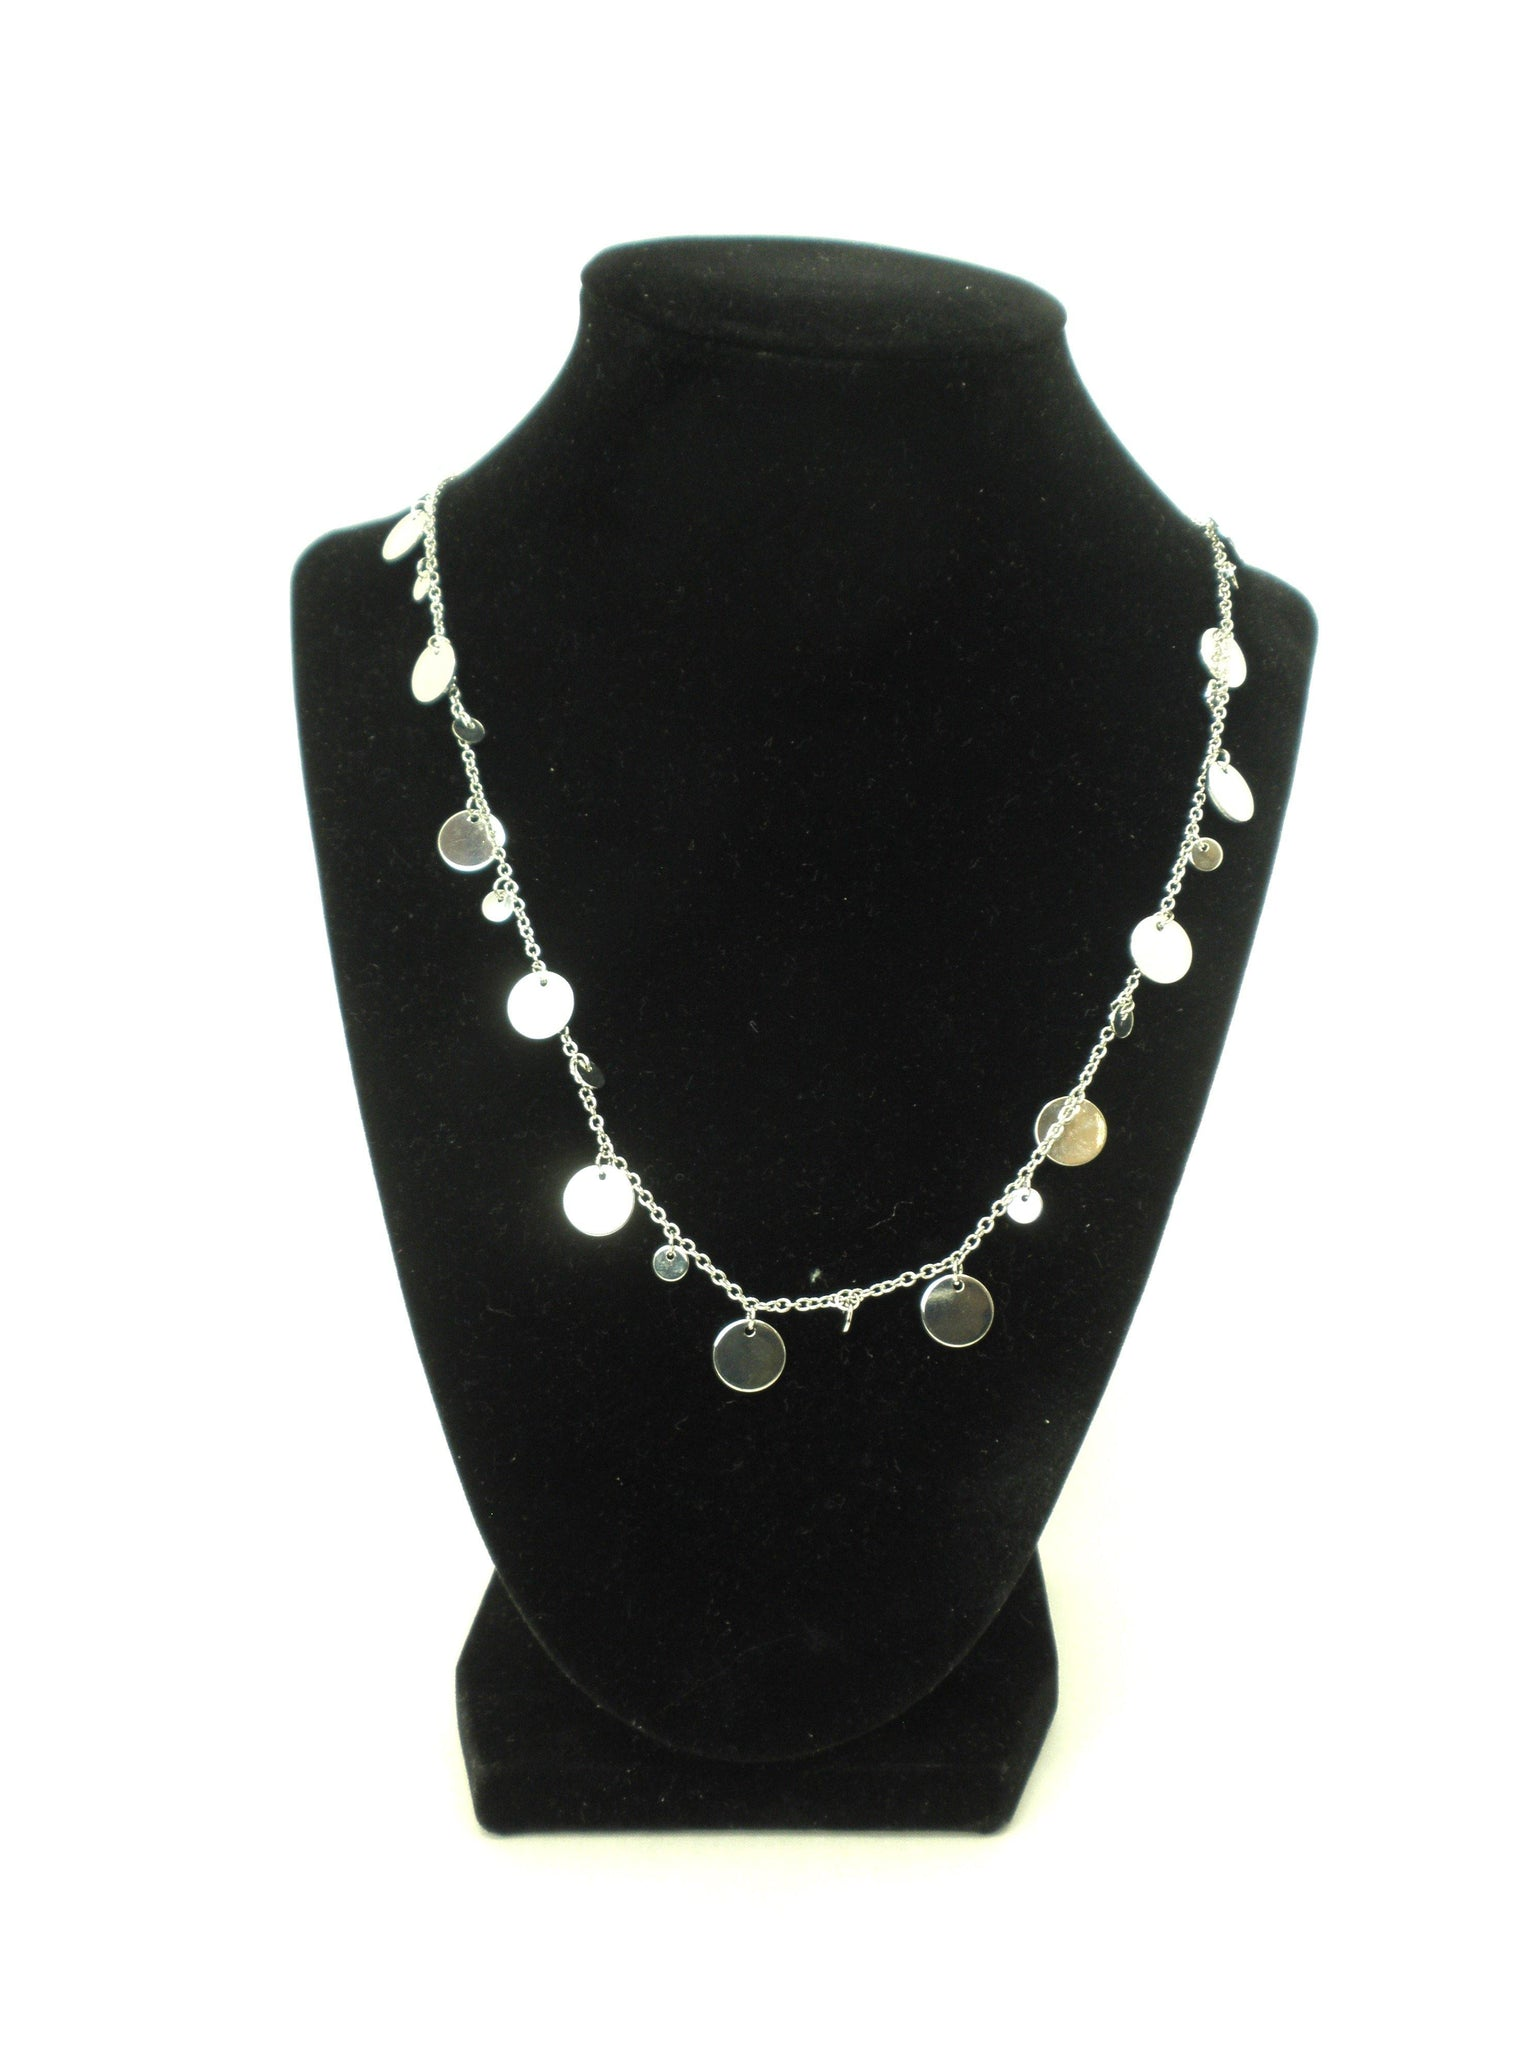 Necklace Lined with Silver Circles